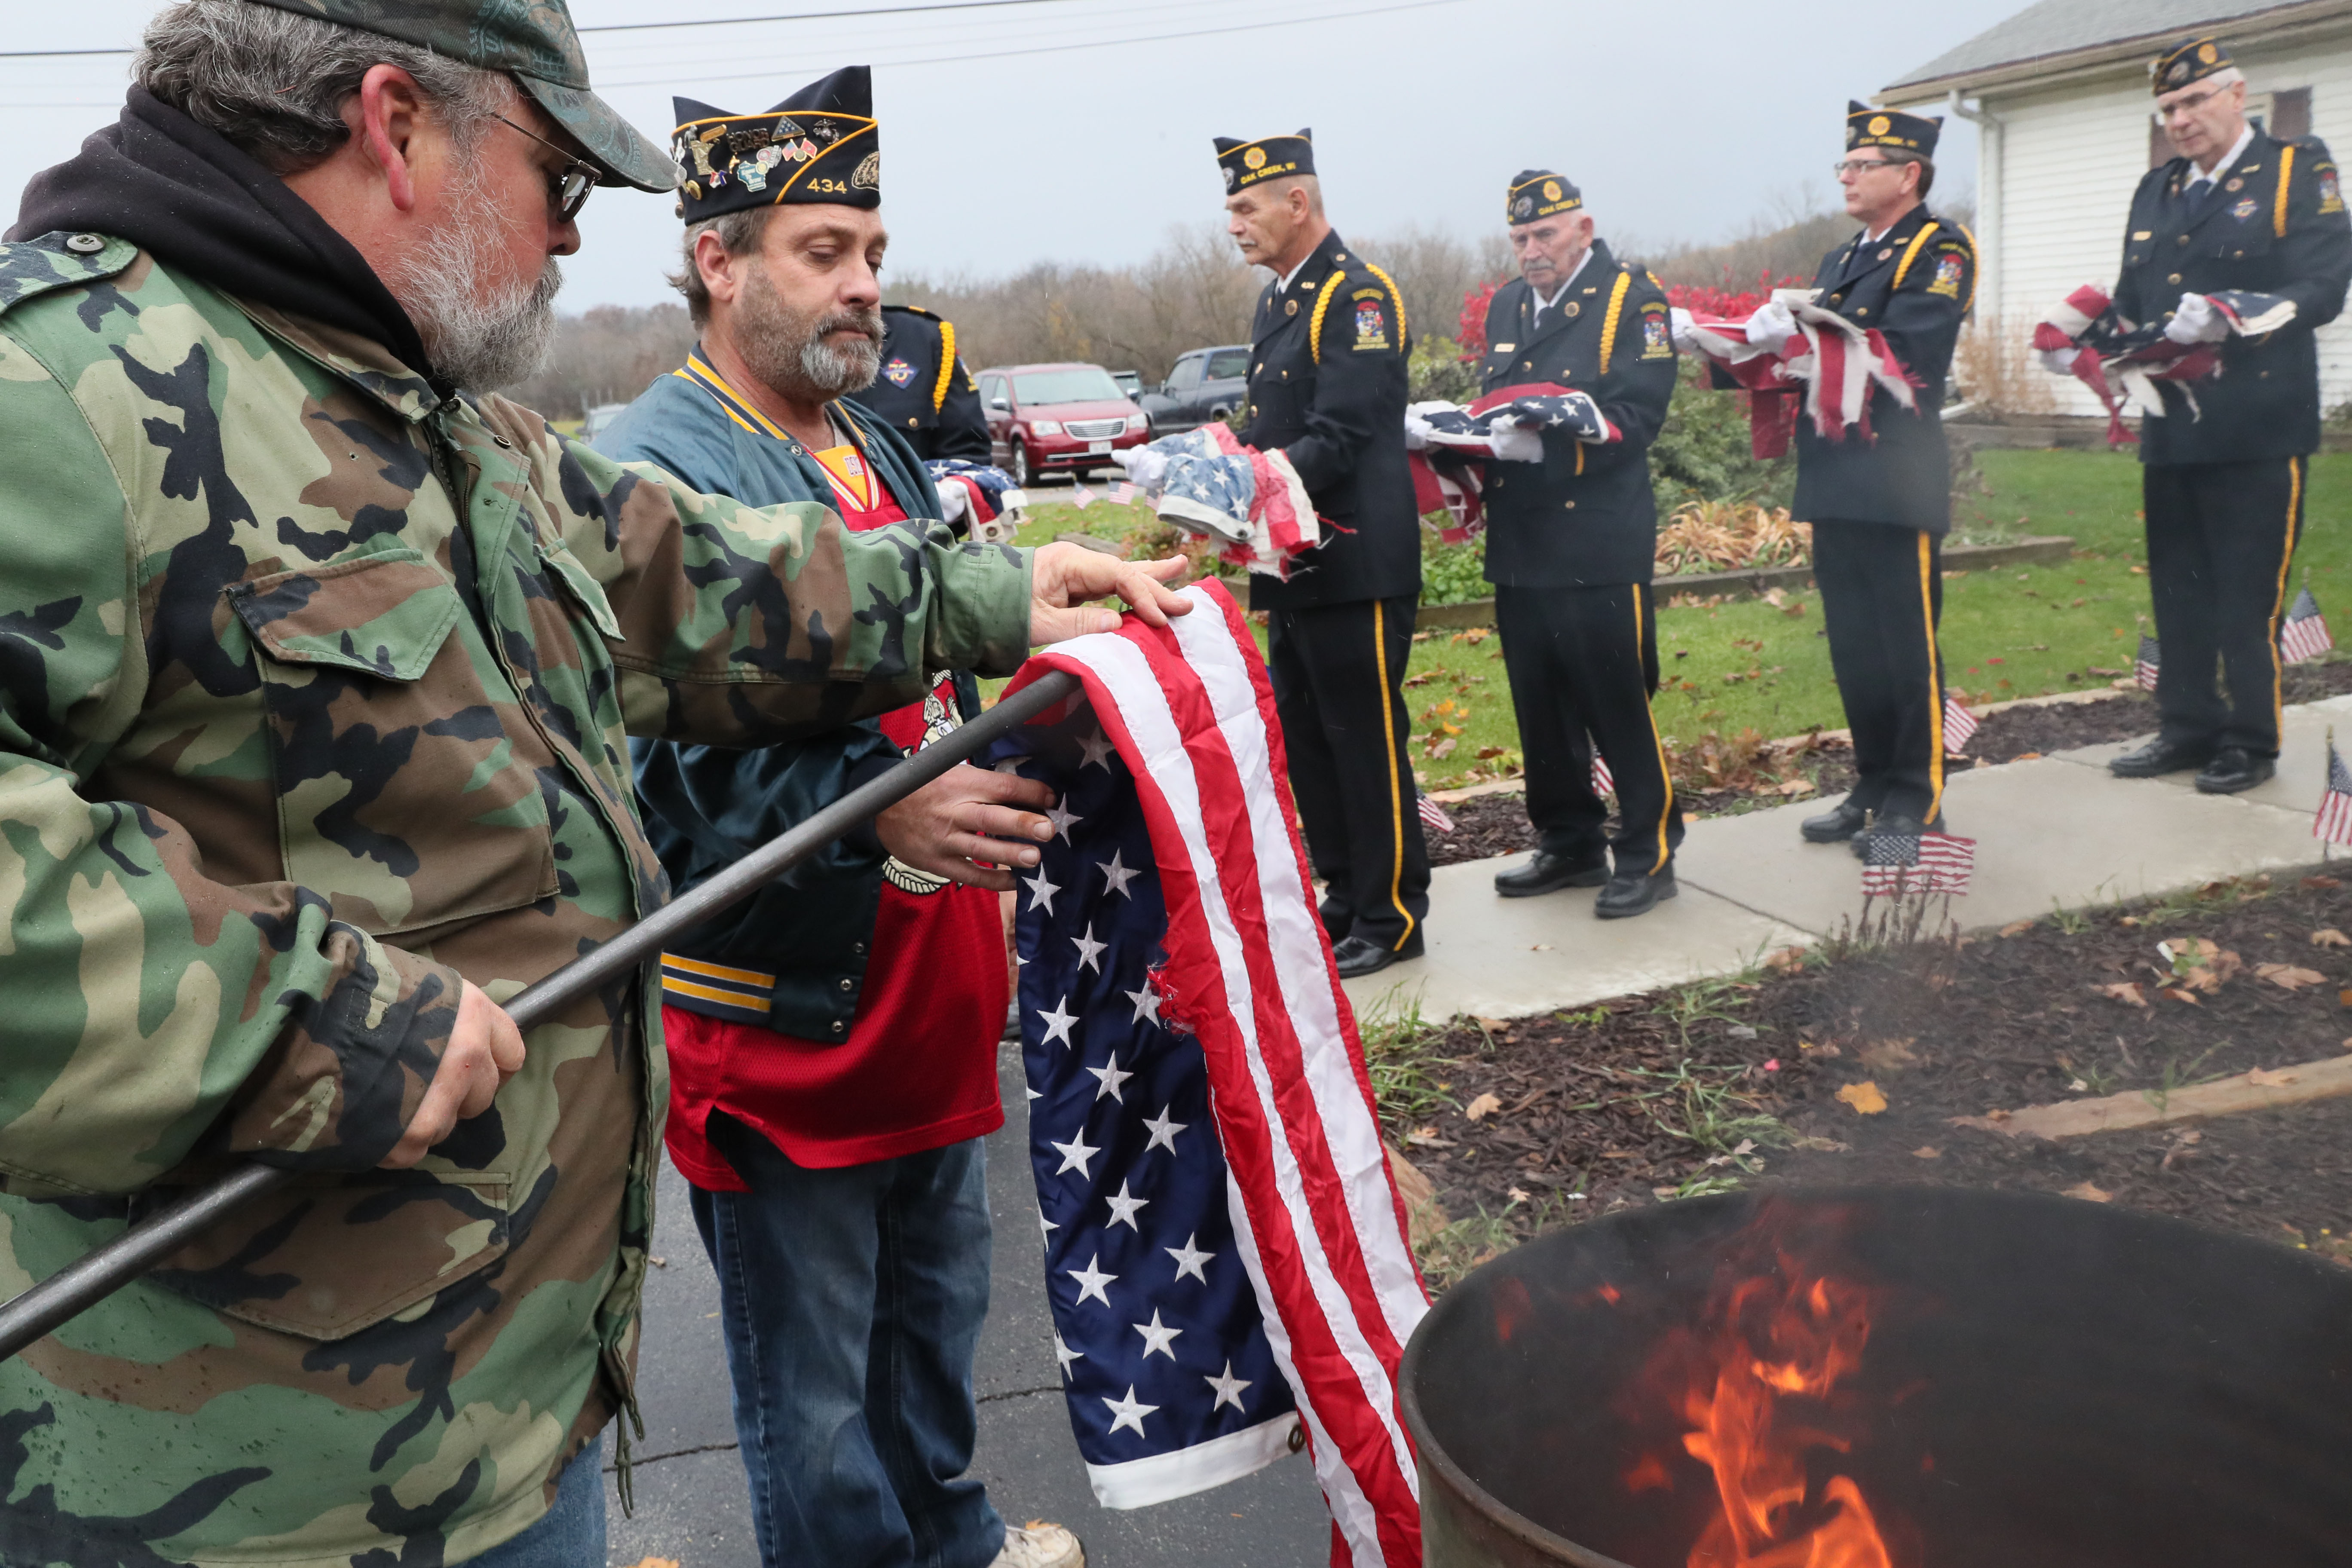 Here Roger Jenson (left) takes flags from Second Vice Commander Scott Zalewski (center) to be placed in the burn barrel. Other members of the honor guard wait at right with flags to be destroyed.  Photo by Michael Sears/Milwaukee Journal Sentinel